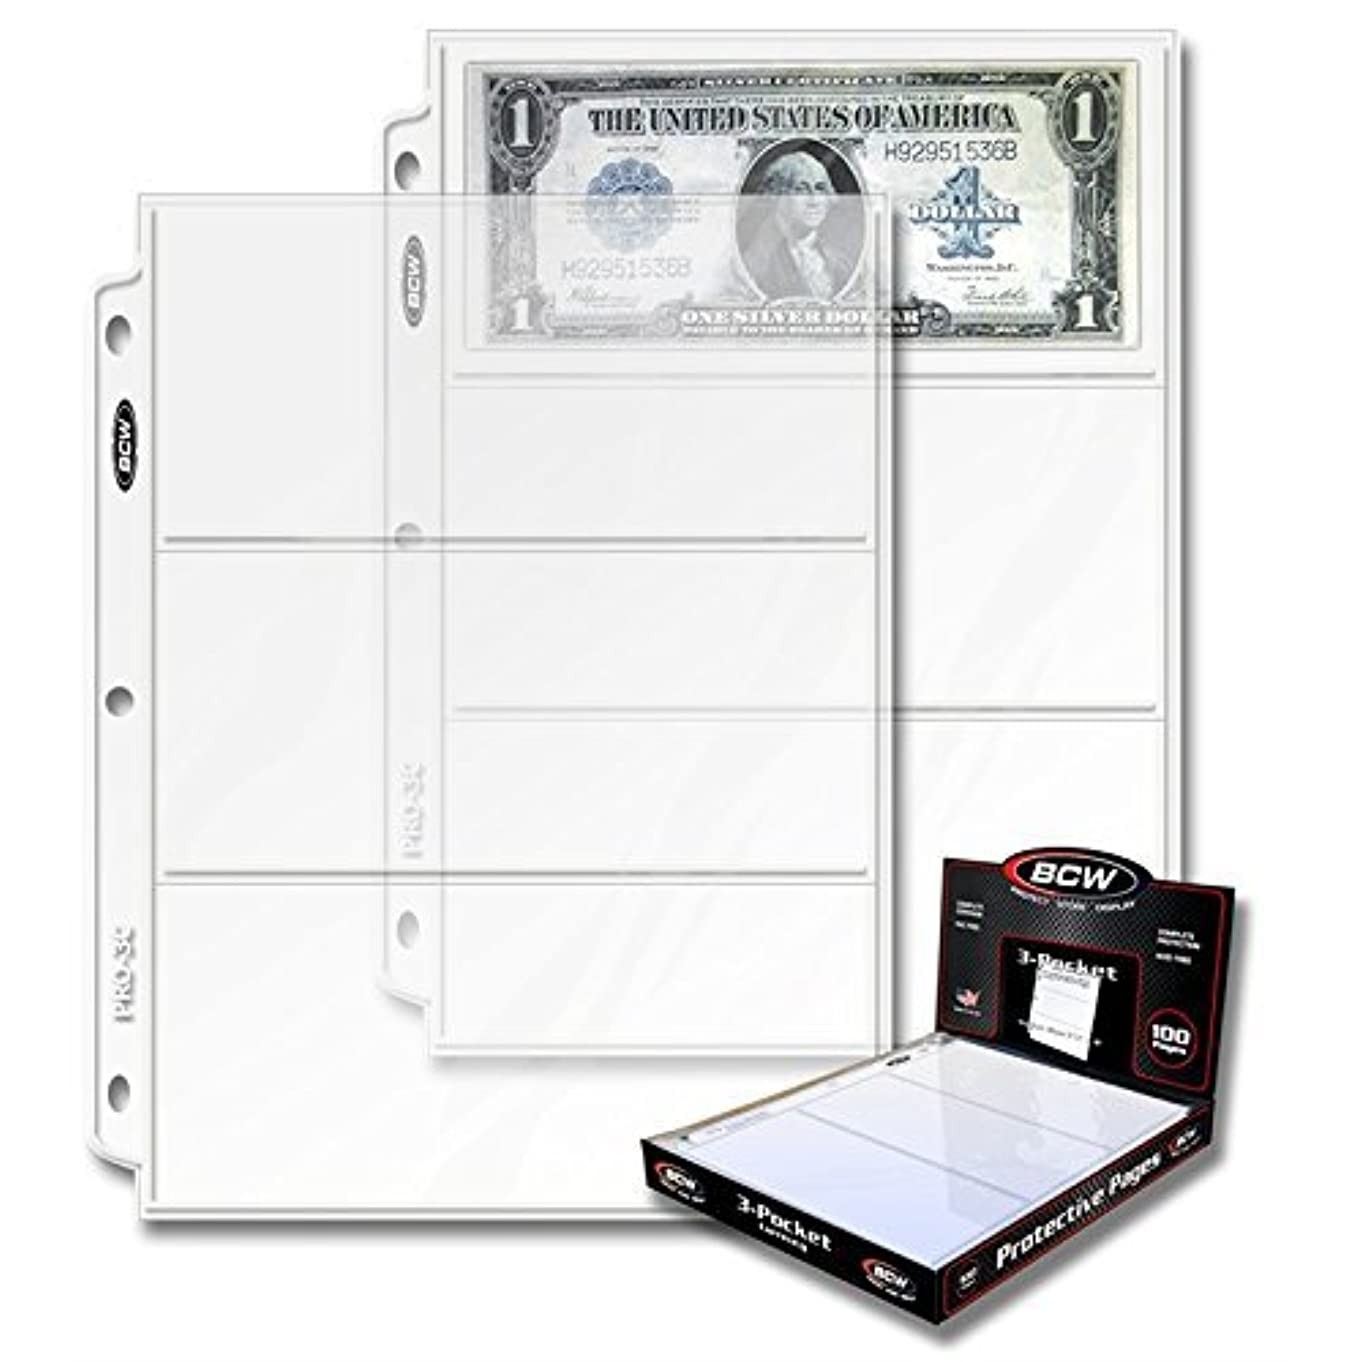 BCW PRO 3-POCKET CURRENCY PAGE (100 CT. BOX) (Original Version)